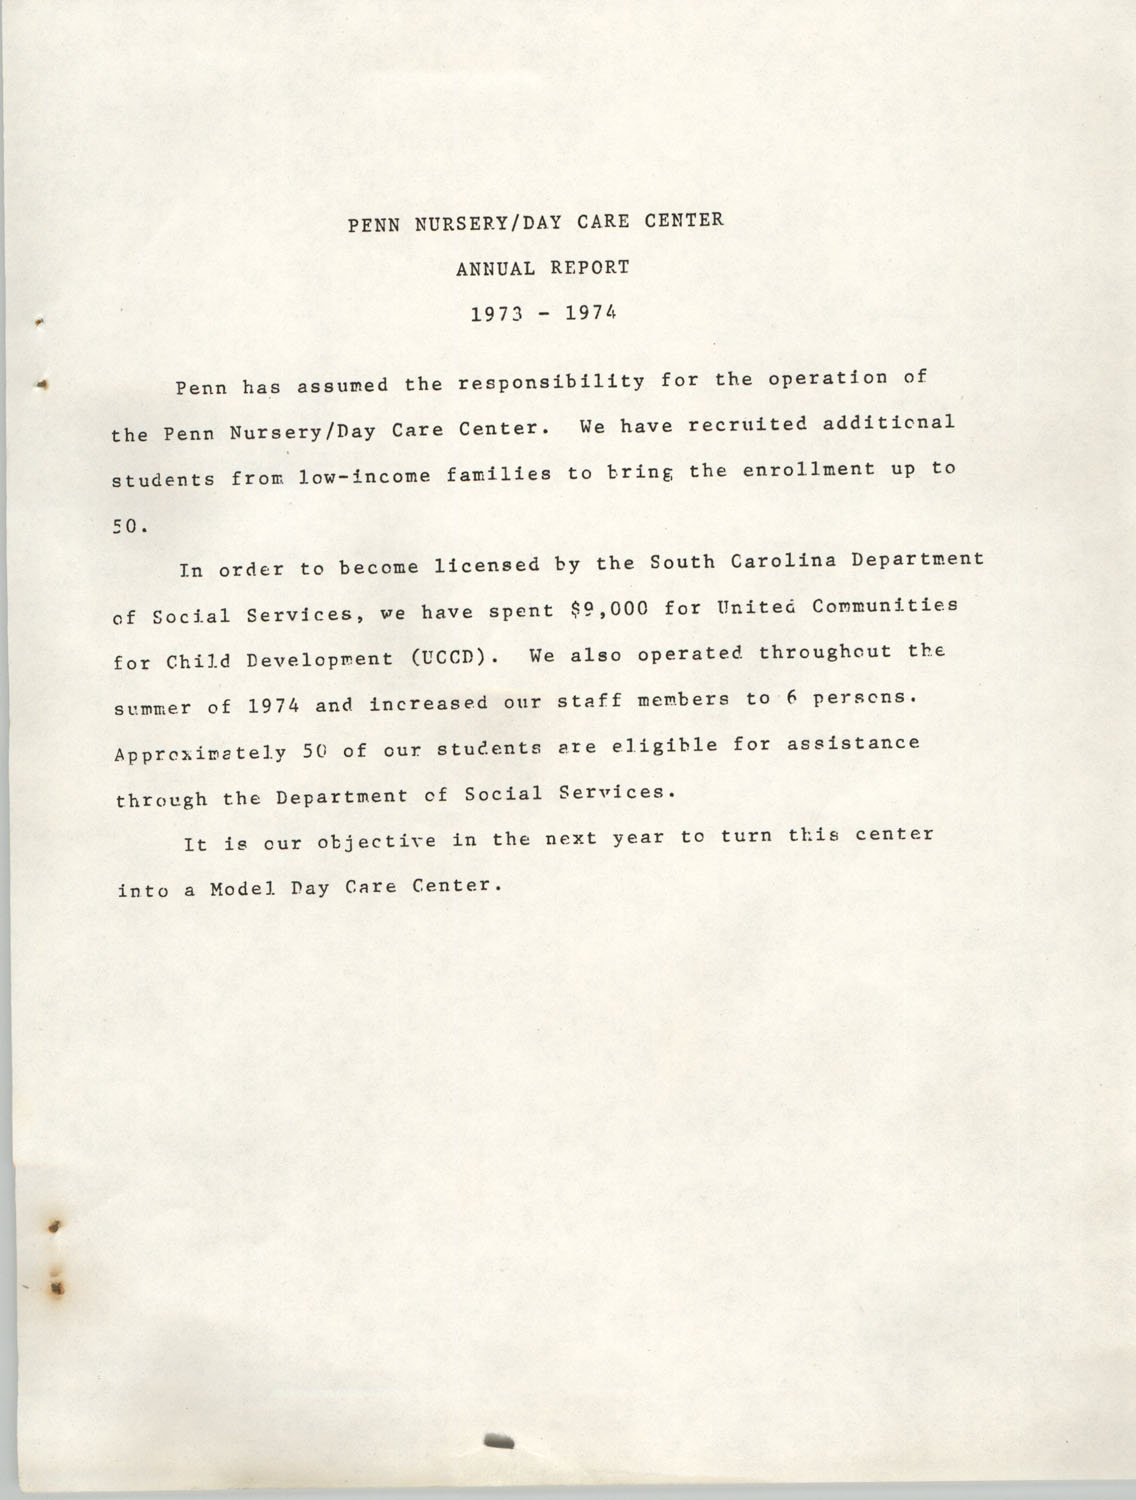 Annual Report, Penn Community Services, 1974, Page 34